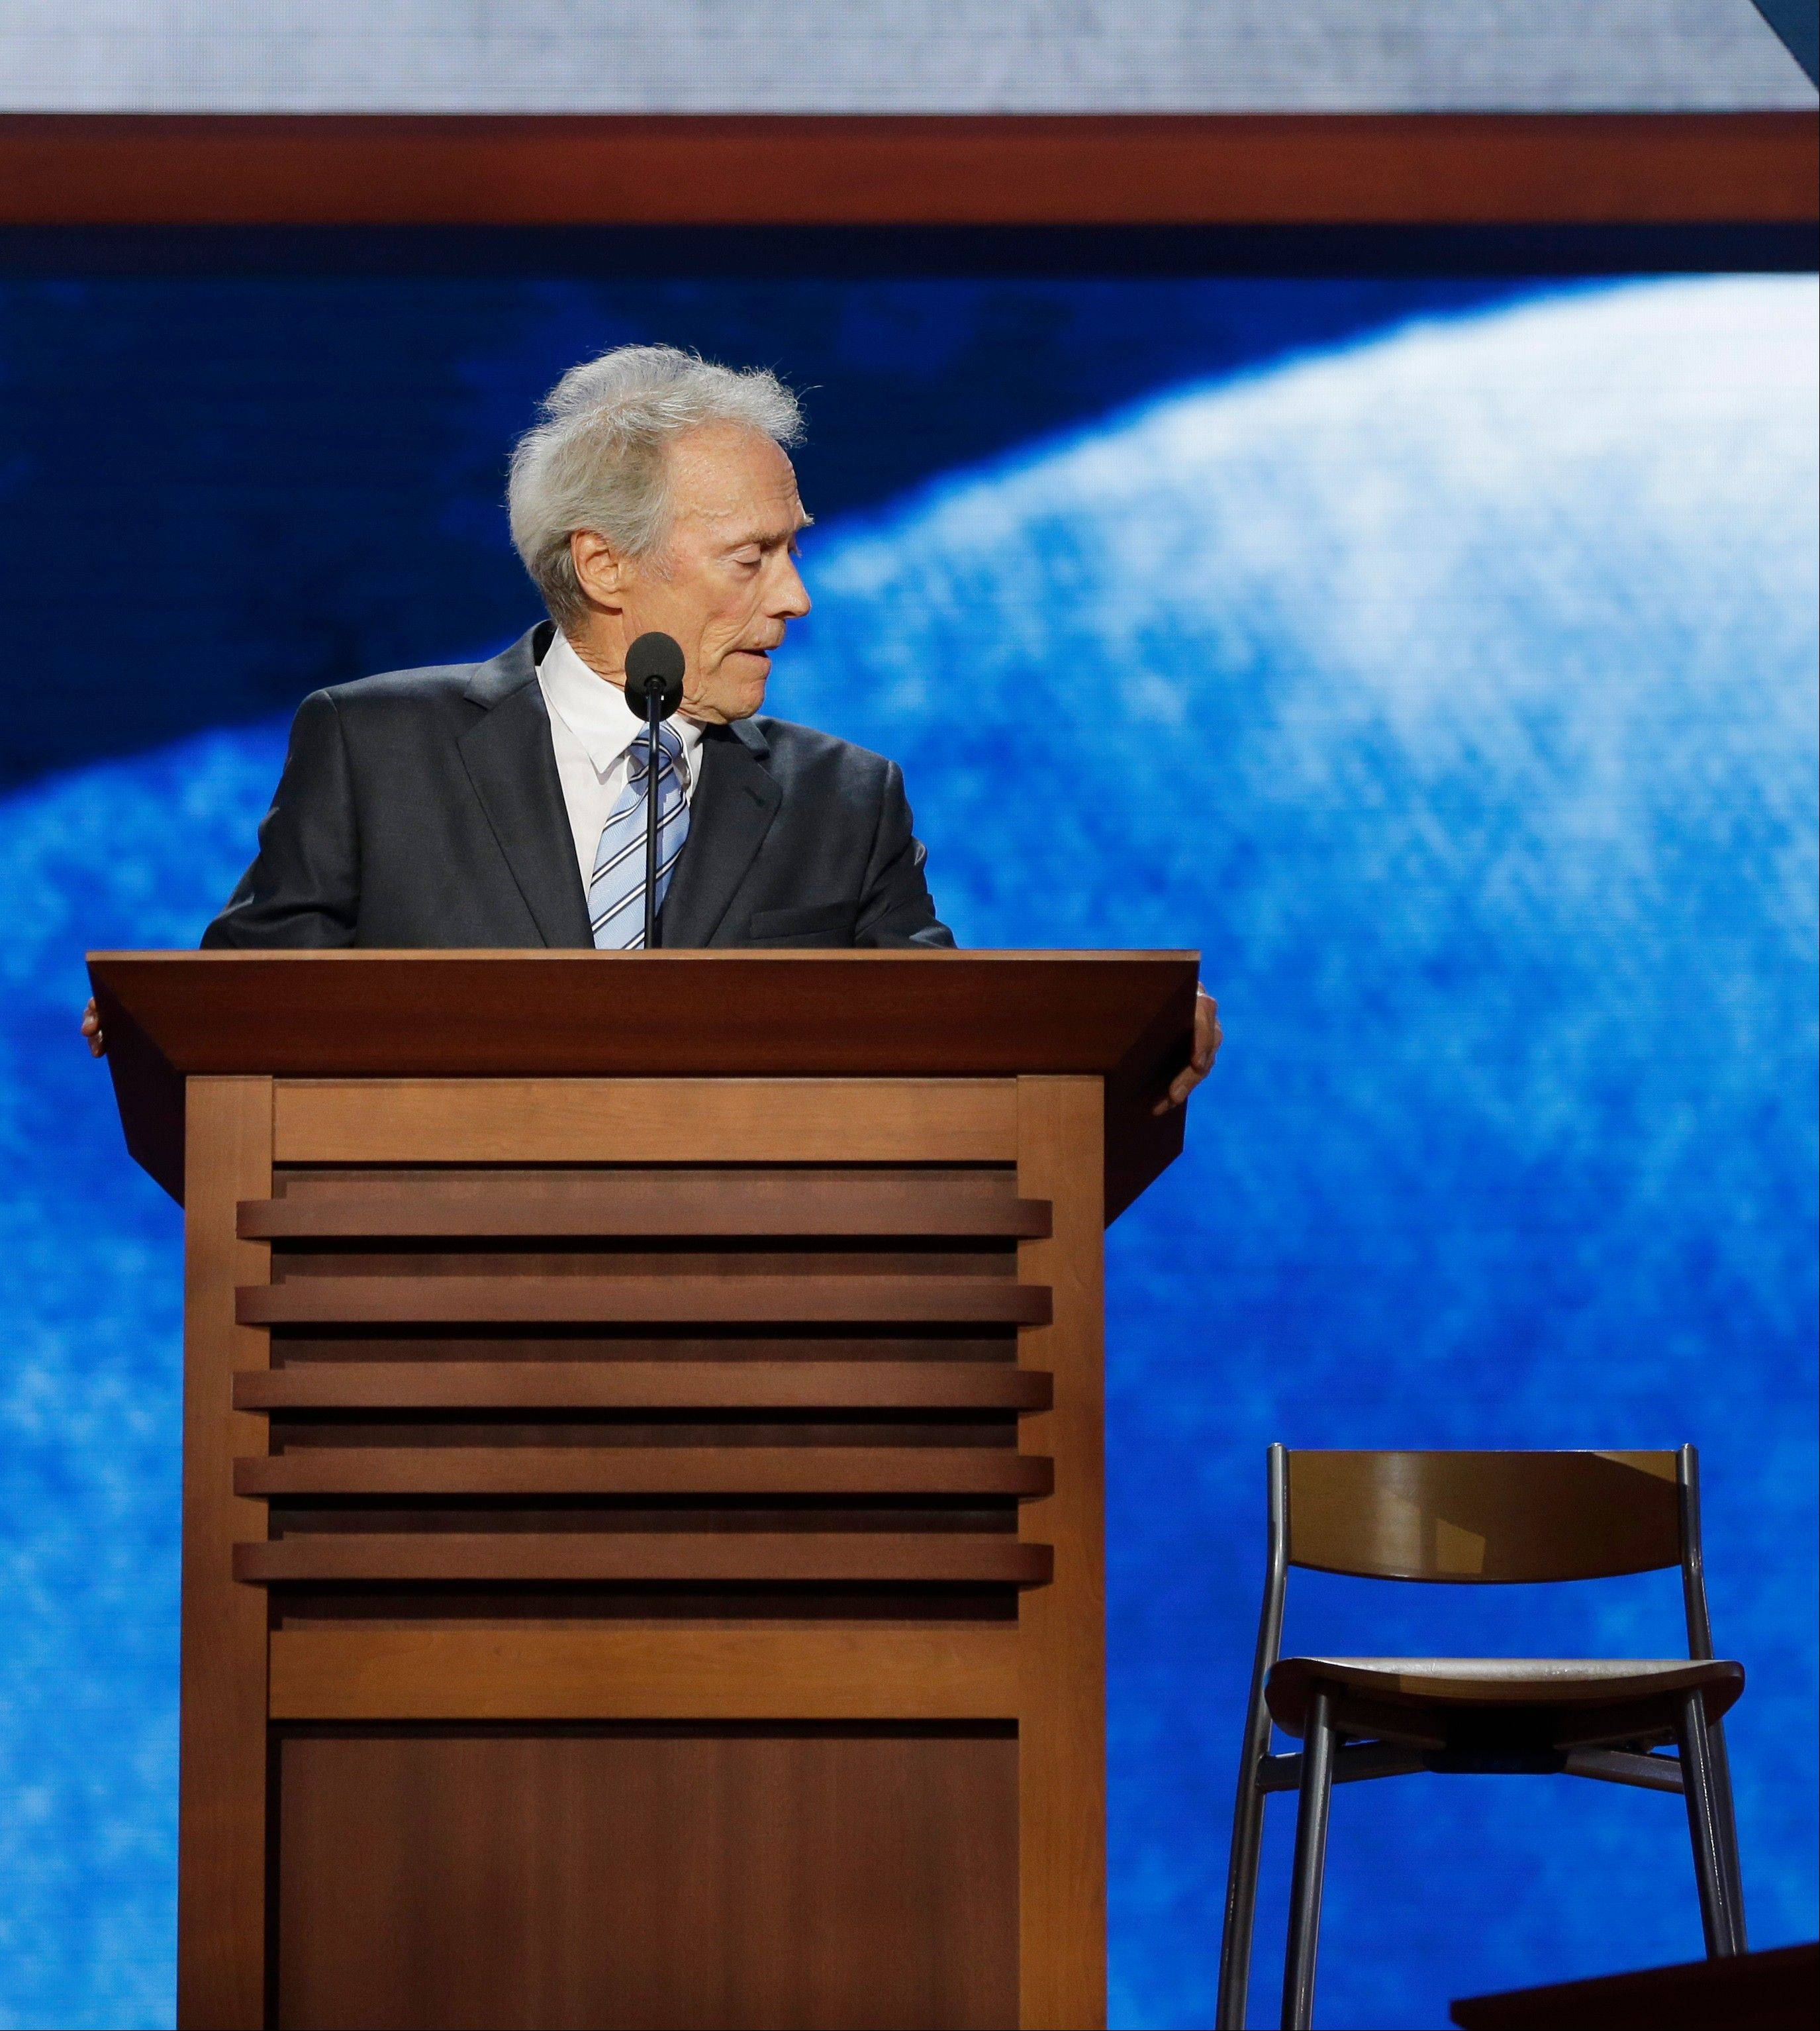 Actor Clint Eastwood looks toward an empty chair as he addresses the Republican National Convention in Tampa, Fla.